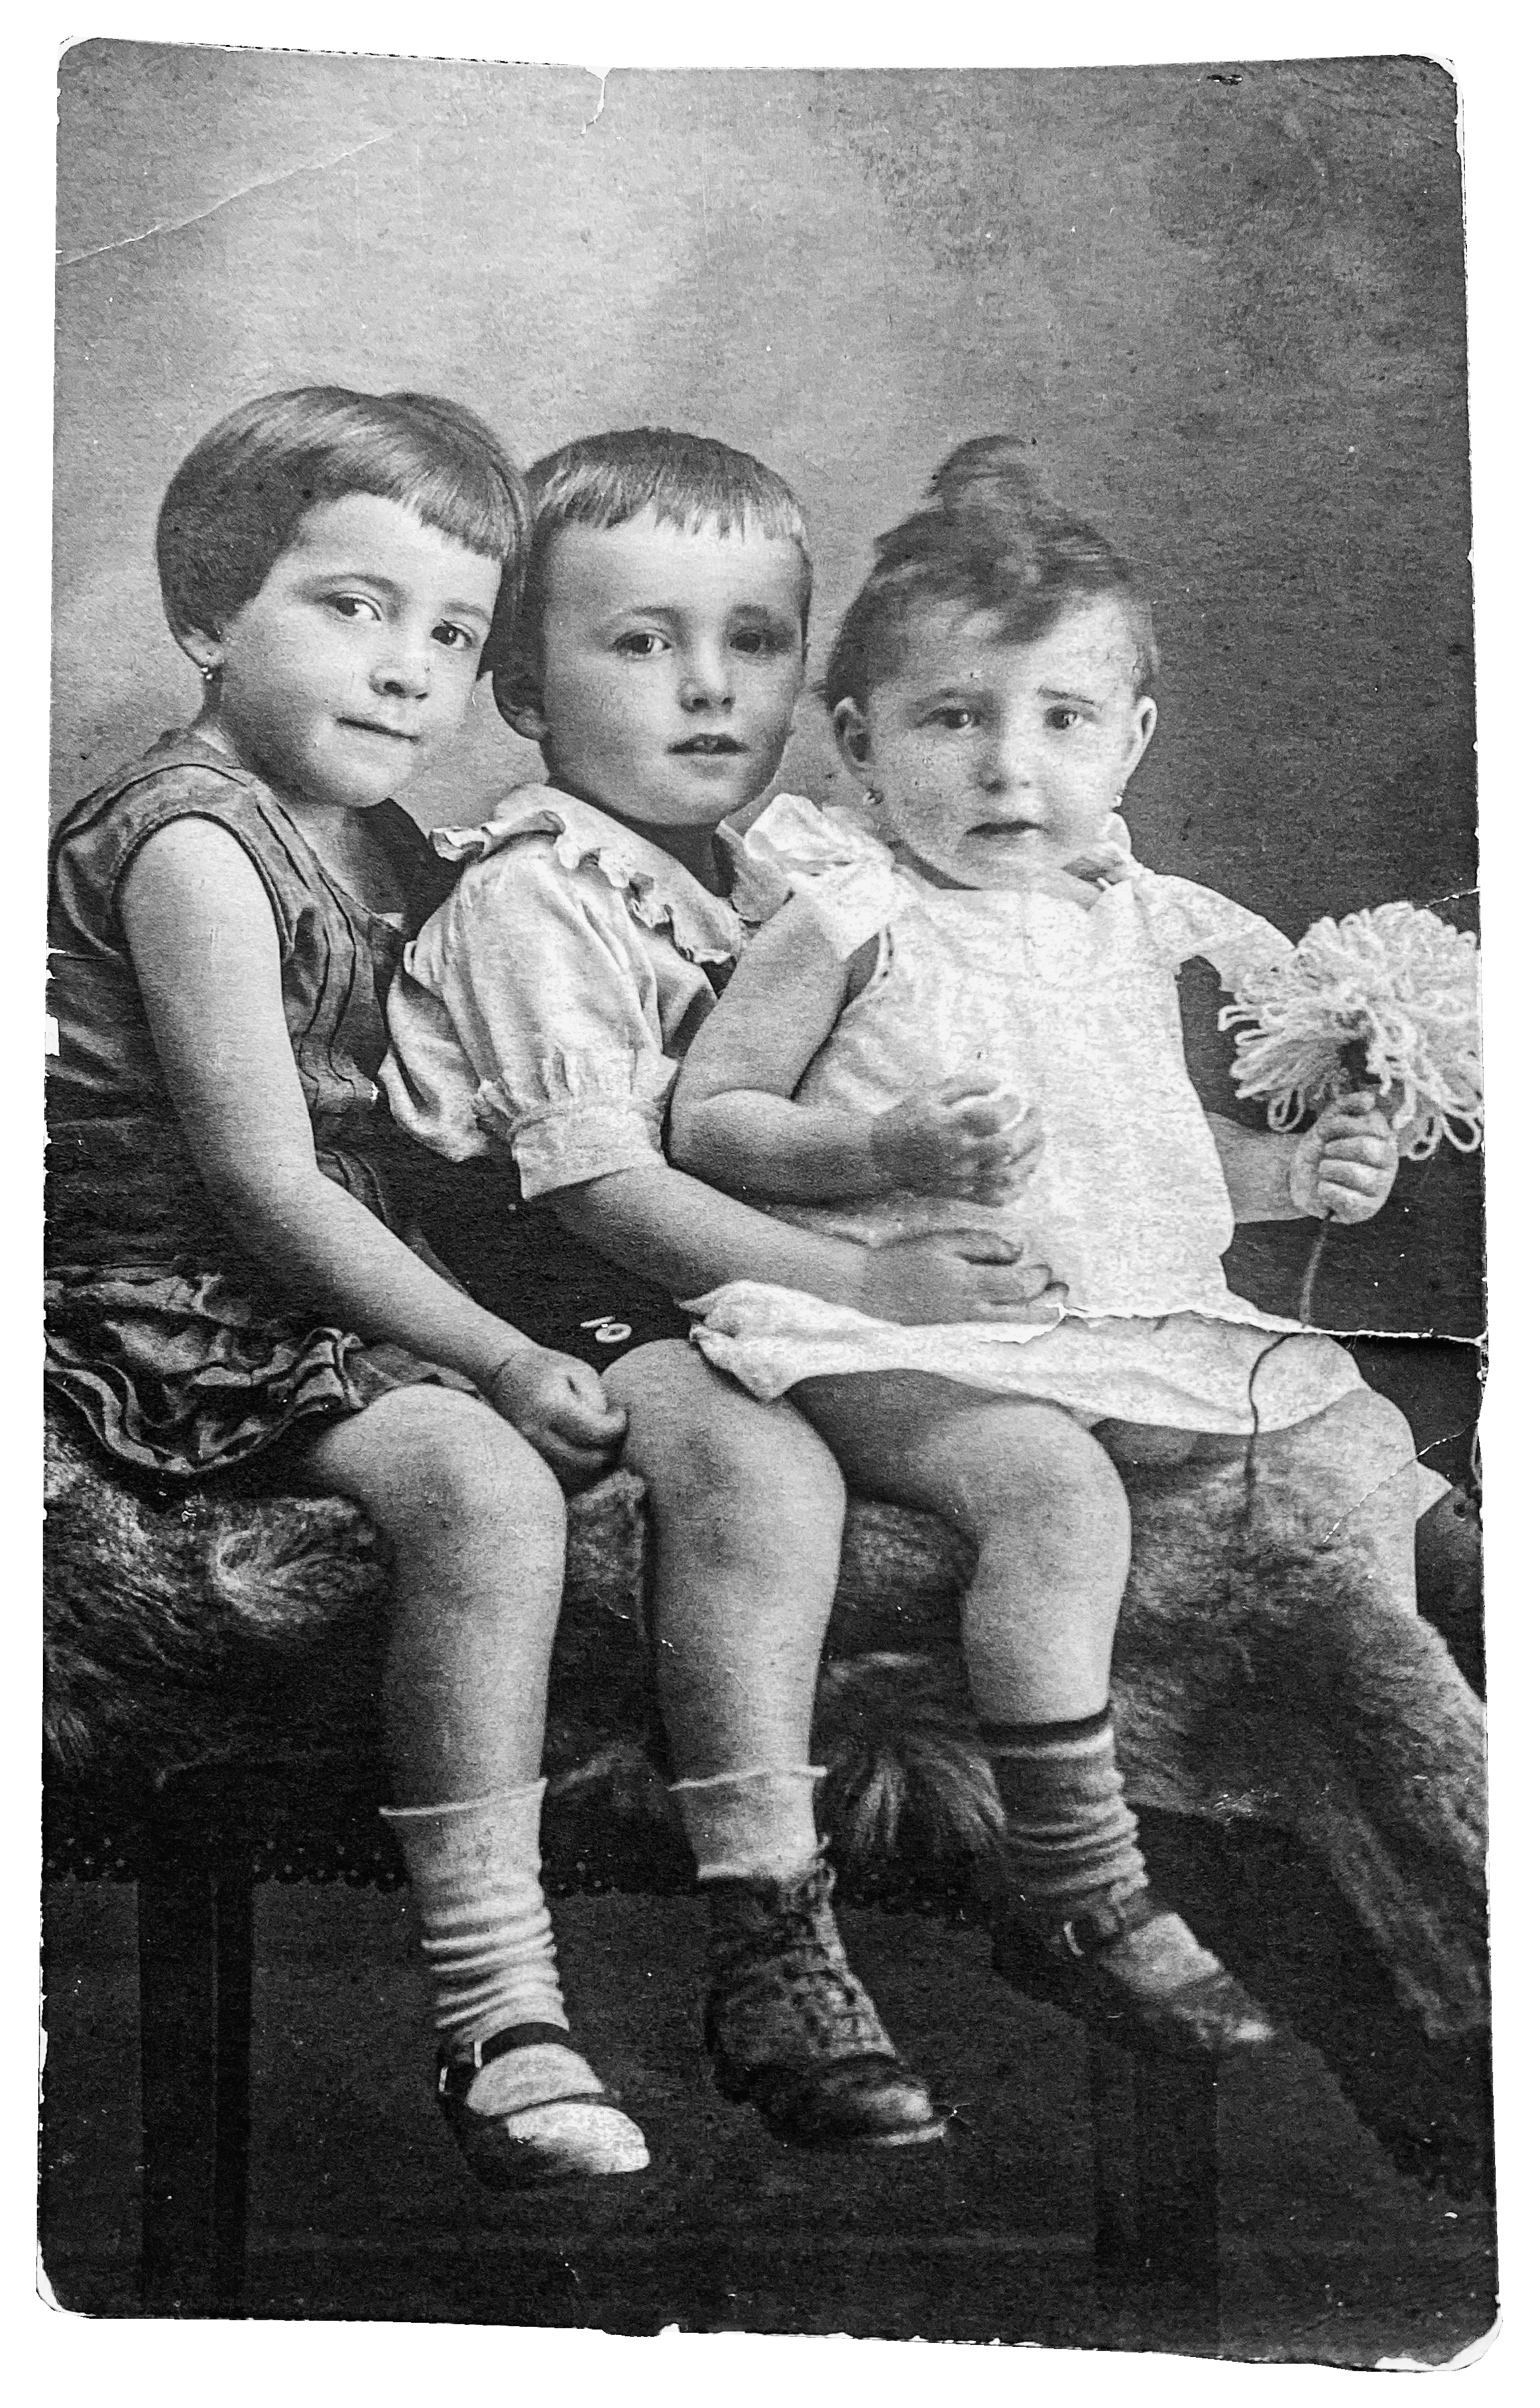 Magda and her siblings circa 1925 Left to right: Magda, Mythieu, Susan